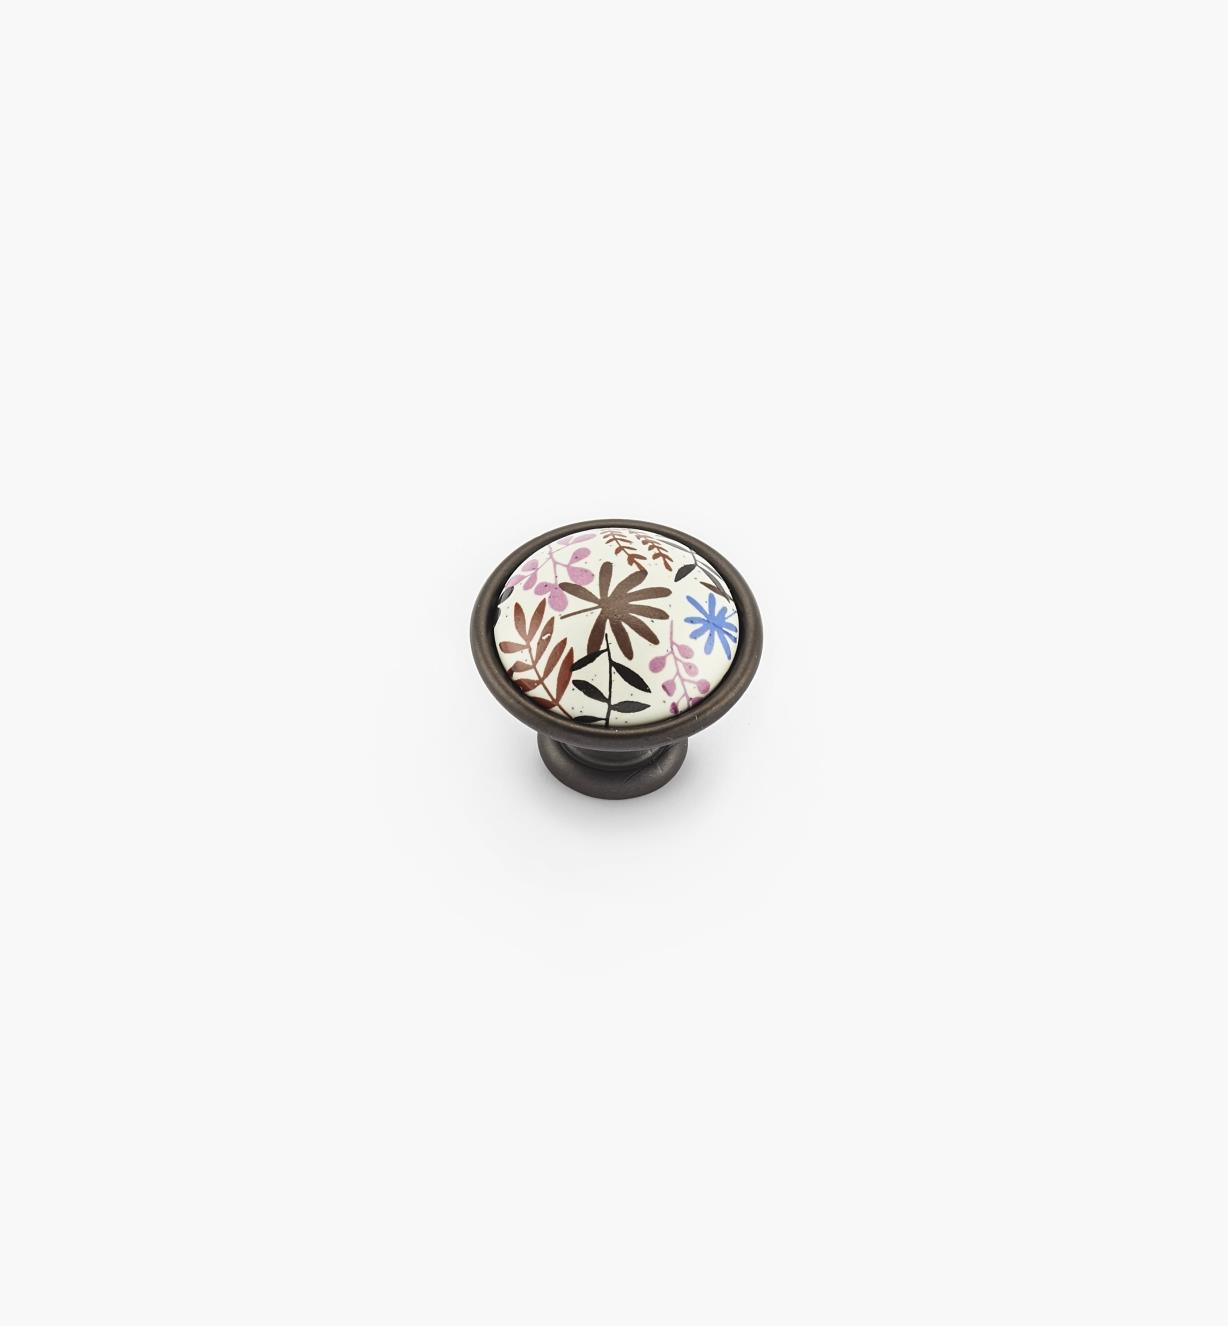 00A7752 - Bouton floral New Deco, 38 mm